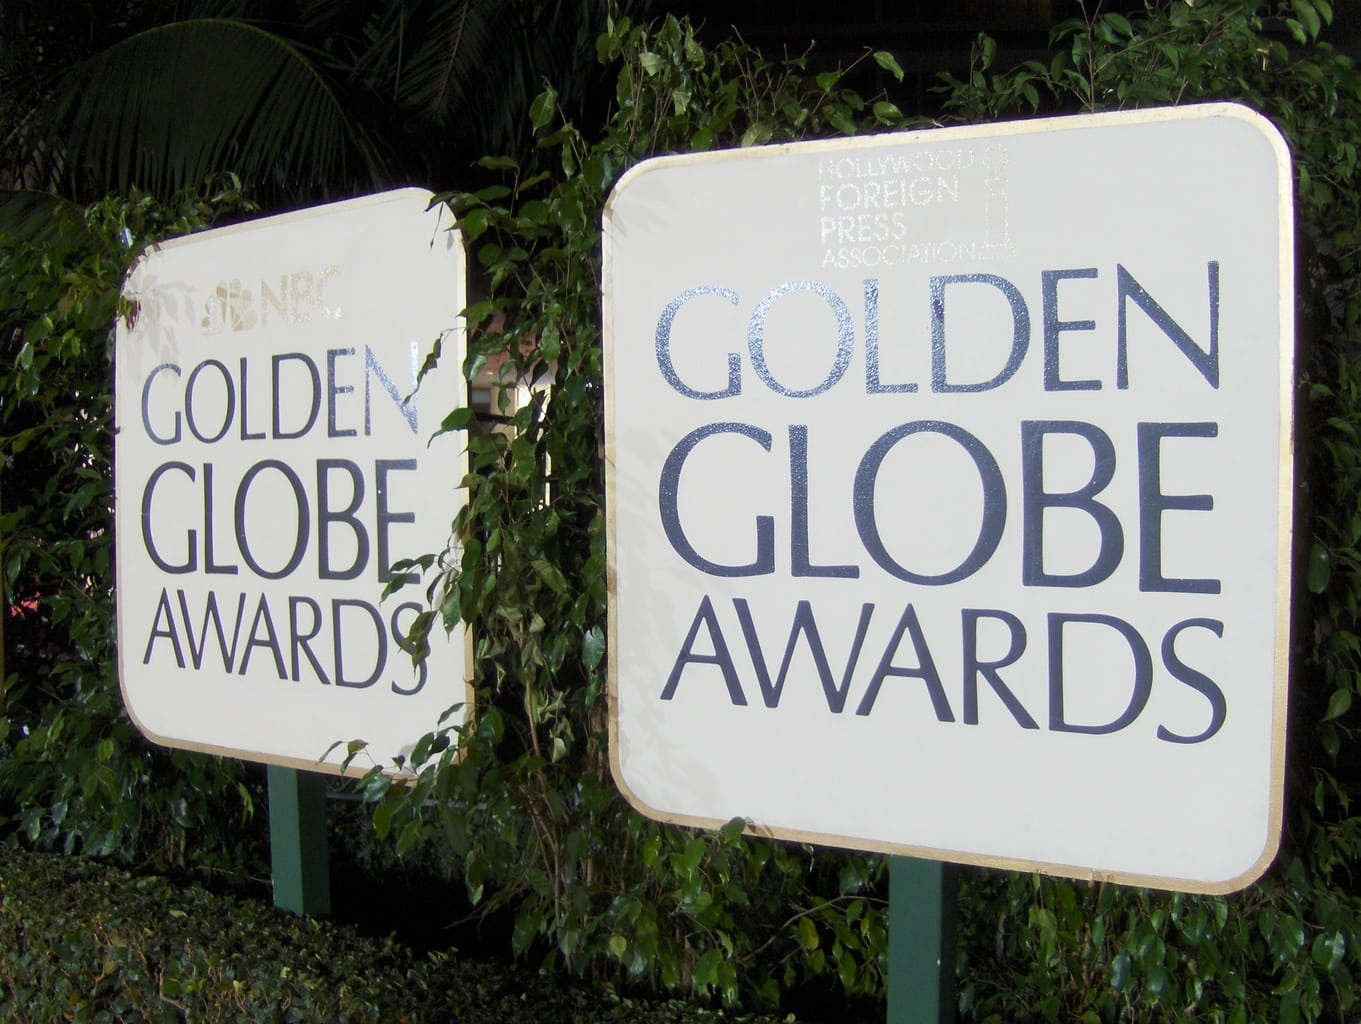 Golden Globe awards signs with the awards show logo on them